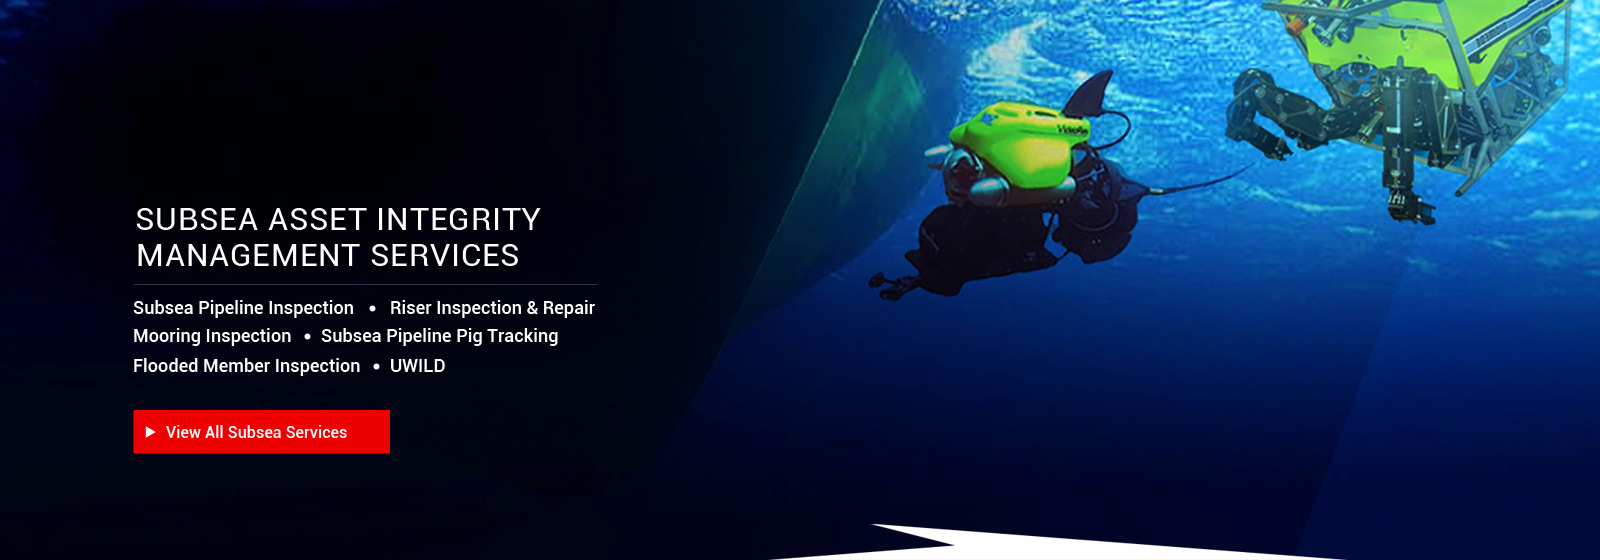 Subsea Asset Integrity Management Services